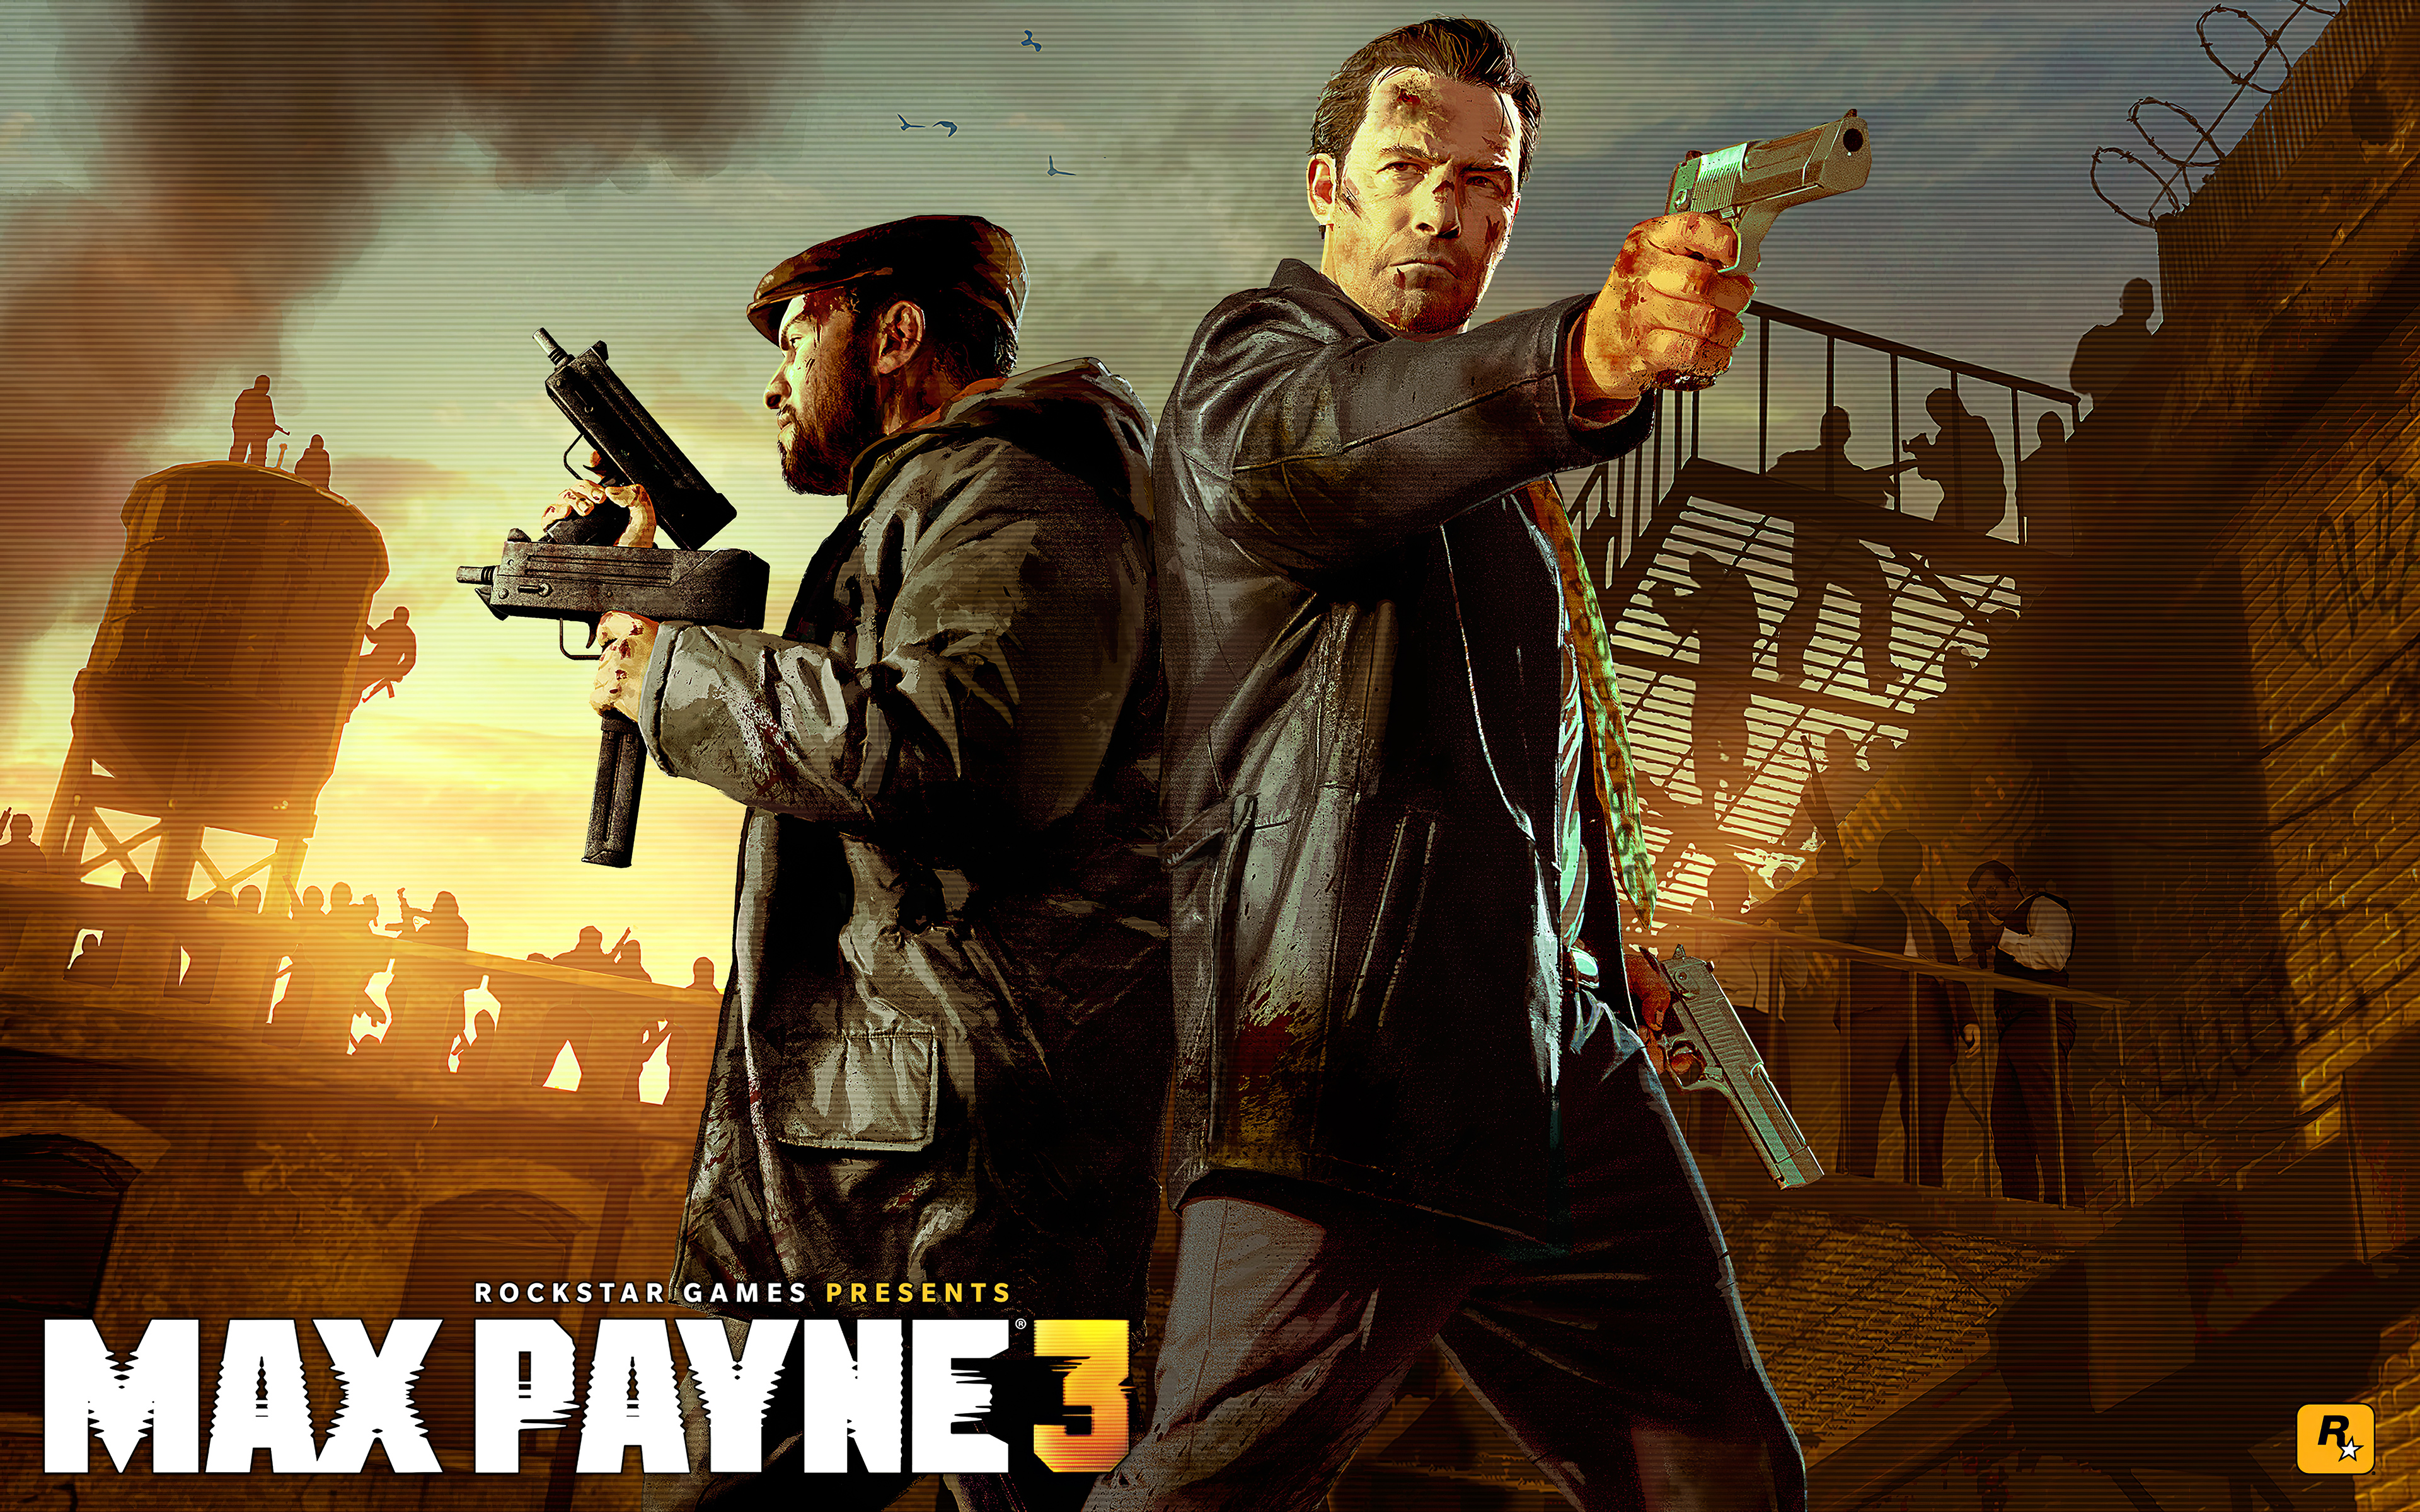 Max Payne 3 Hd Games 4k Wallpapers Images Backgrounds Photos